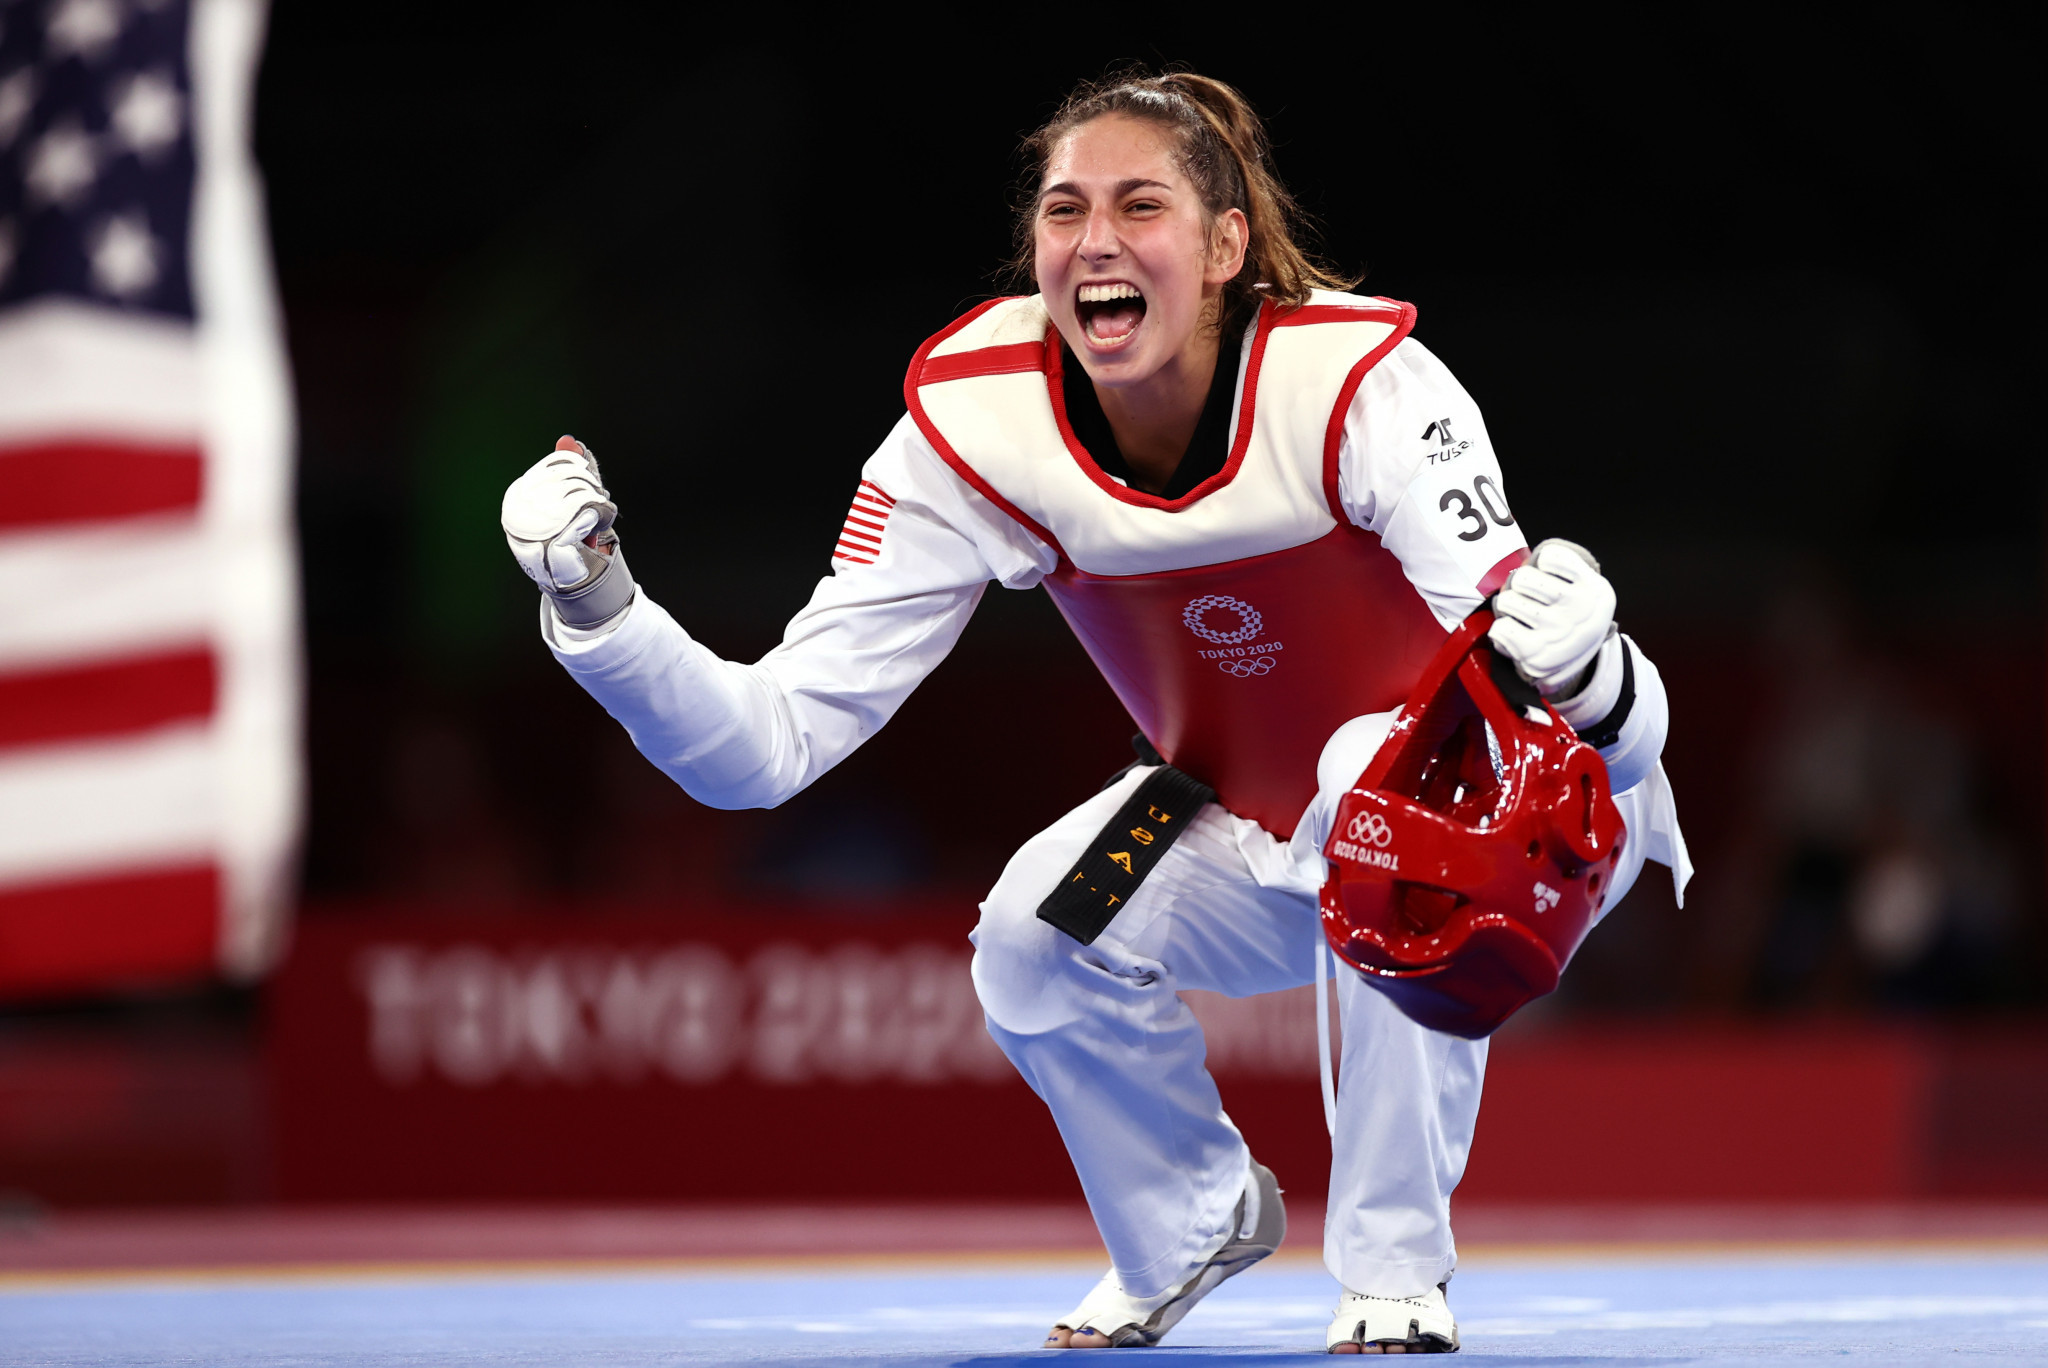 Anastasija Zolotic is the first American woman to win taekwondo gold ©Getty Images